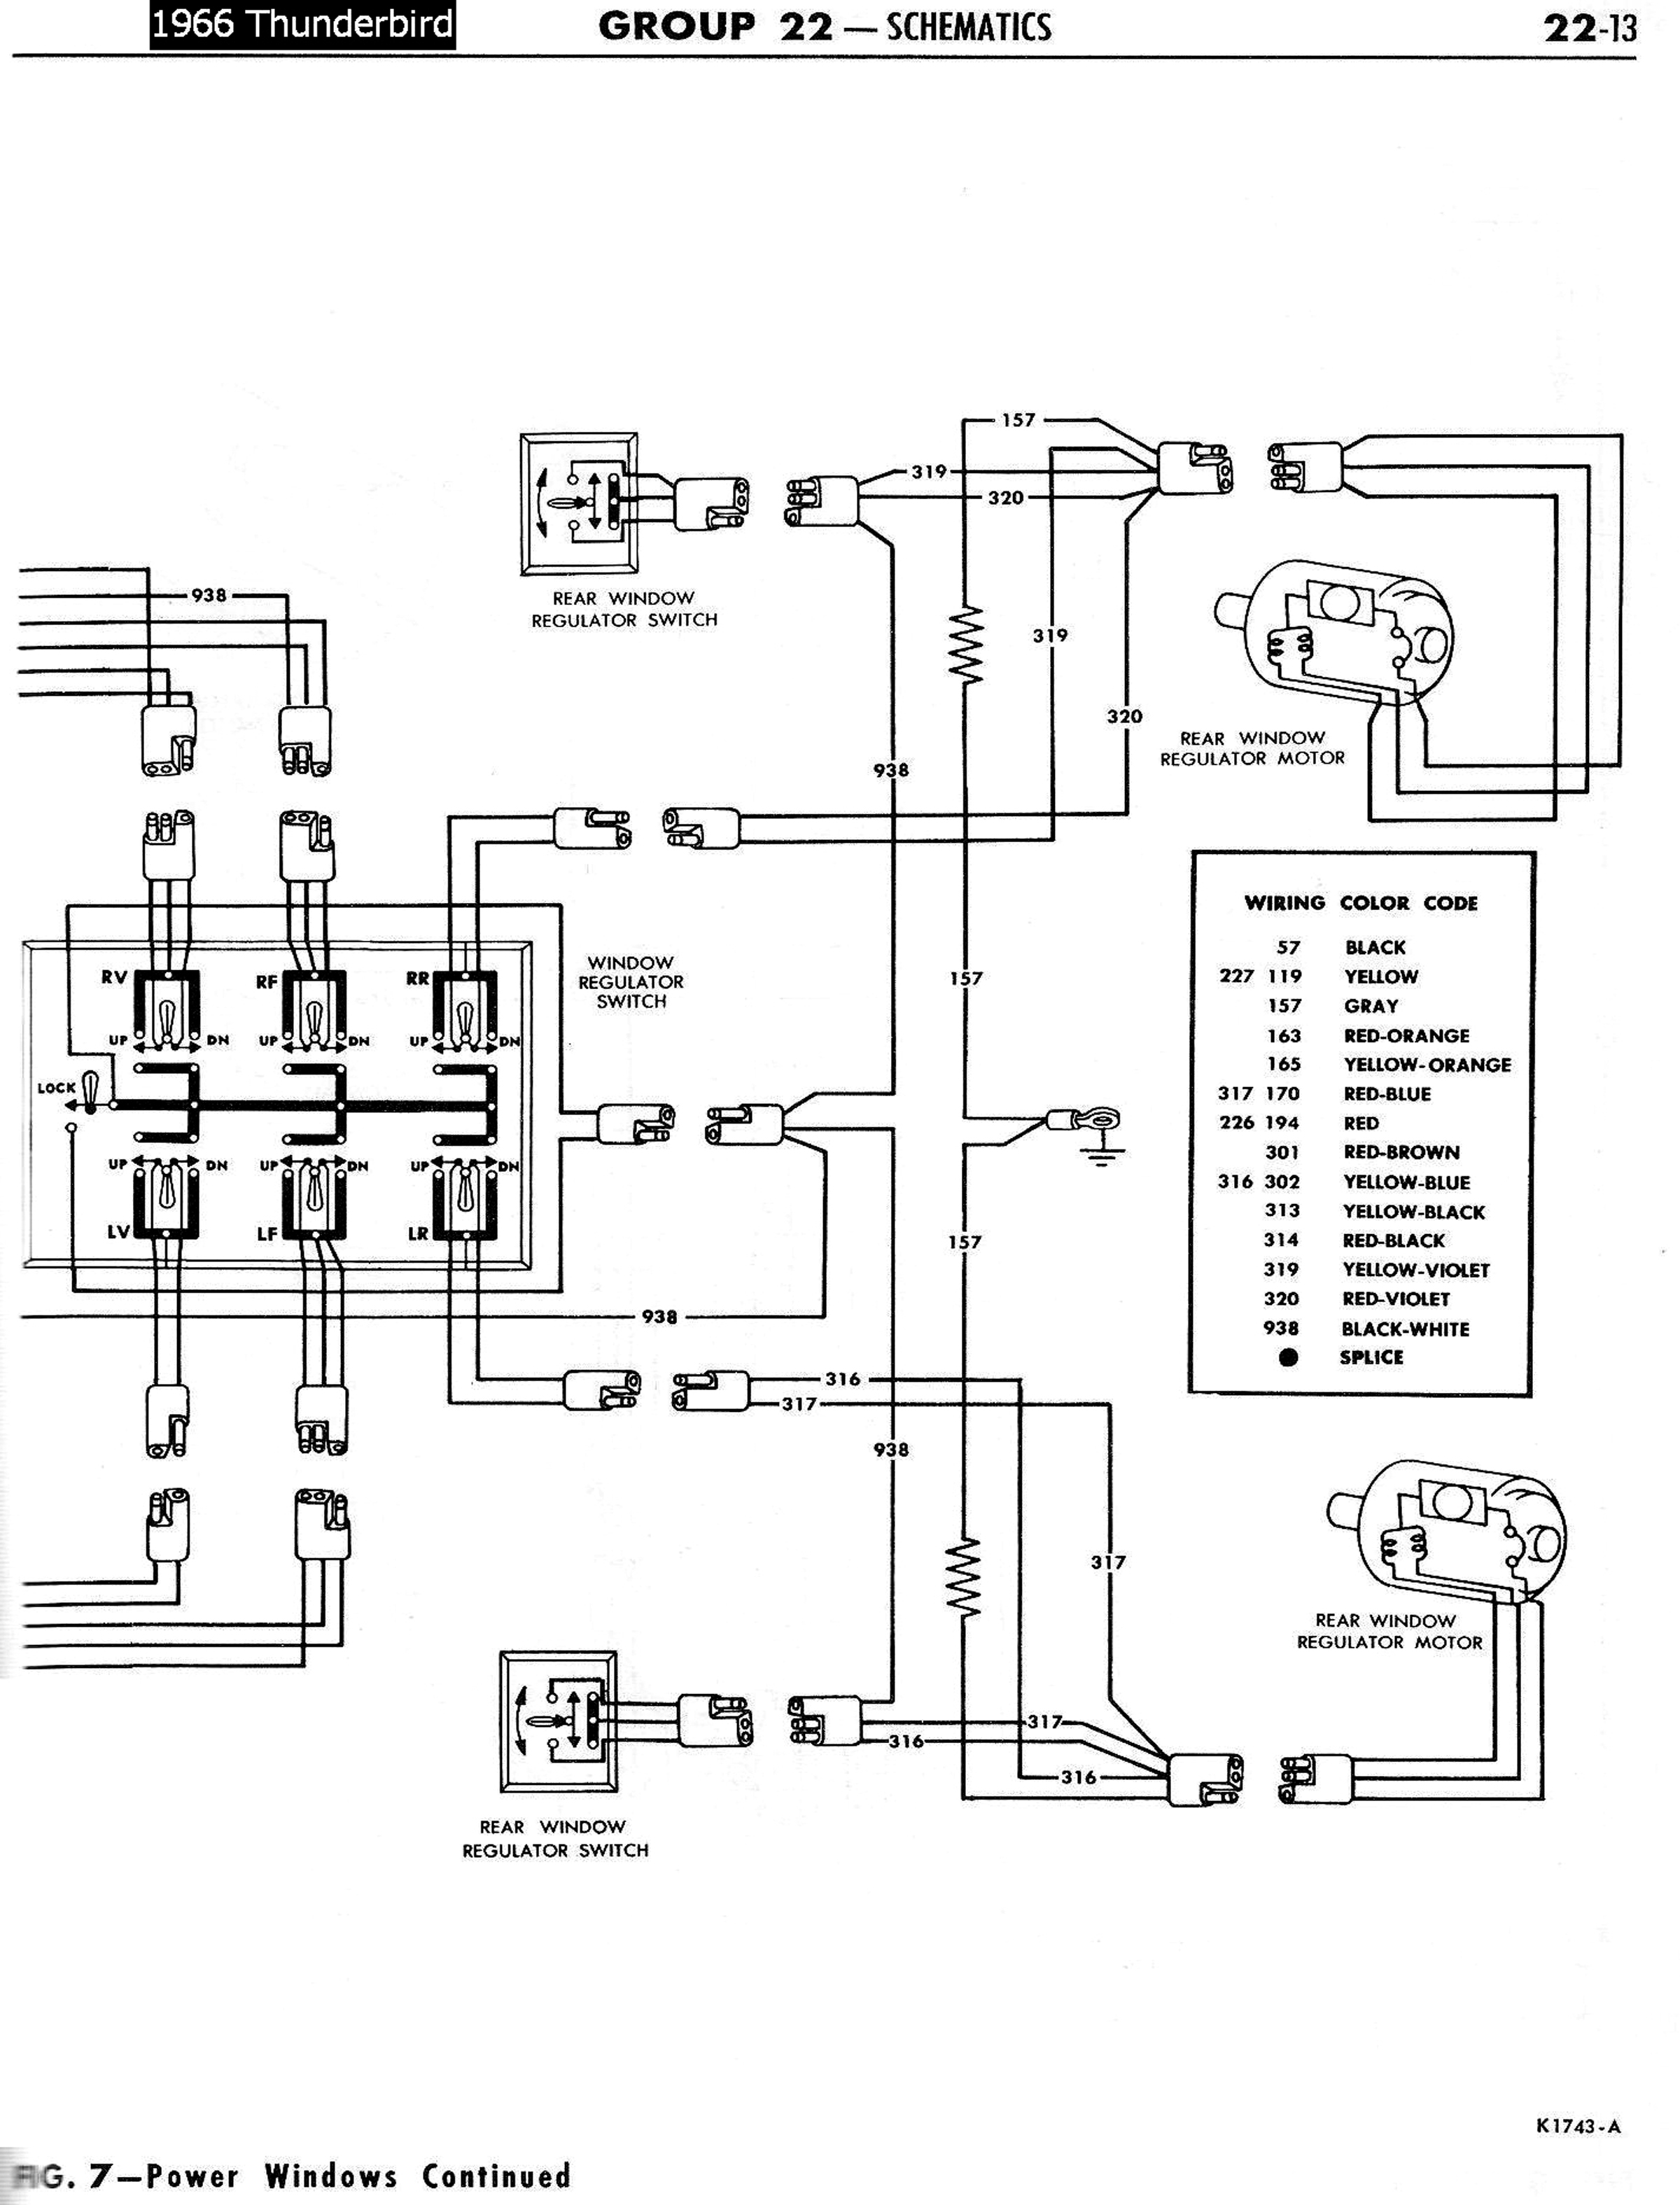 1956 F100 Turn Signal Wiring Diagram Electricity 1970 Ford 1958 68 Electrical Schematics Rh Squarebirds Org